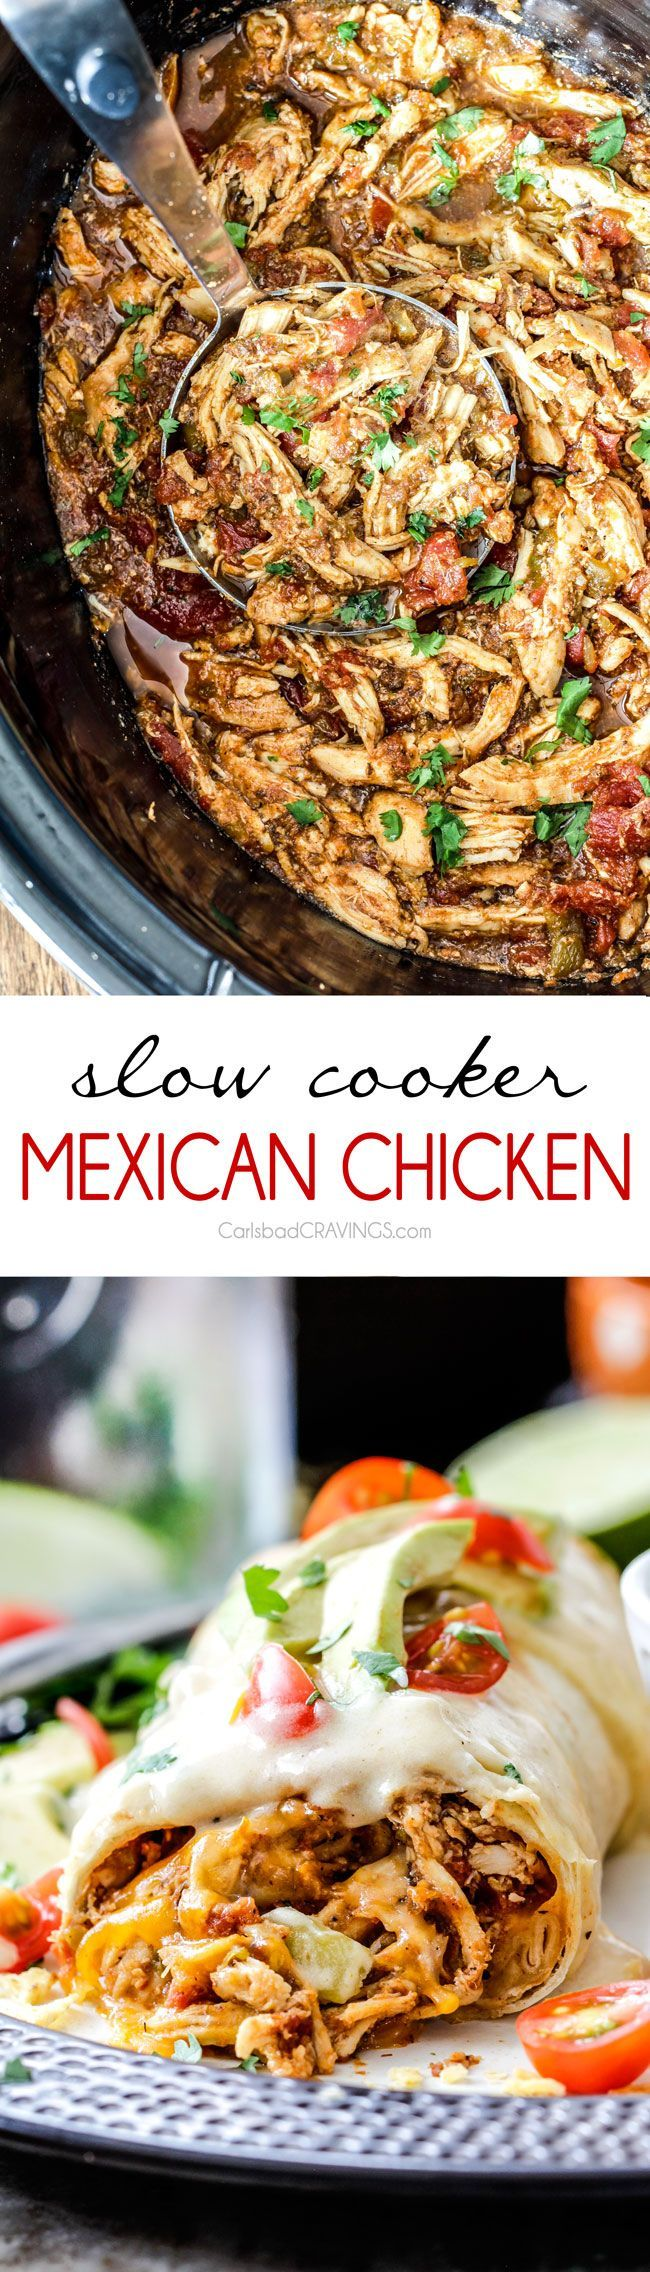 Easy Slow Cooker Shredded Mexican Chicken simmered with Mexican spices, salsa and green chilies for the BEST Mexican chicken perfect for tacos, burritos, tostadas, salads, etc. Couldnt be any easier!